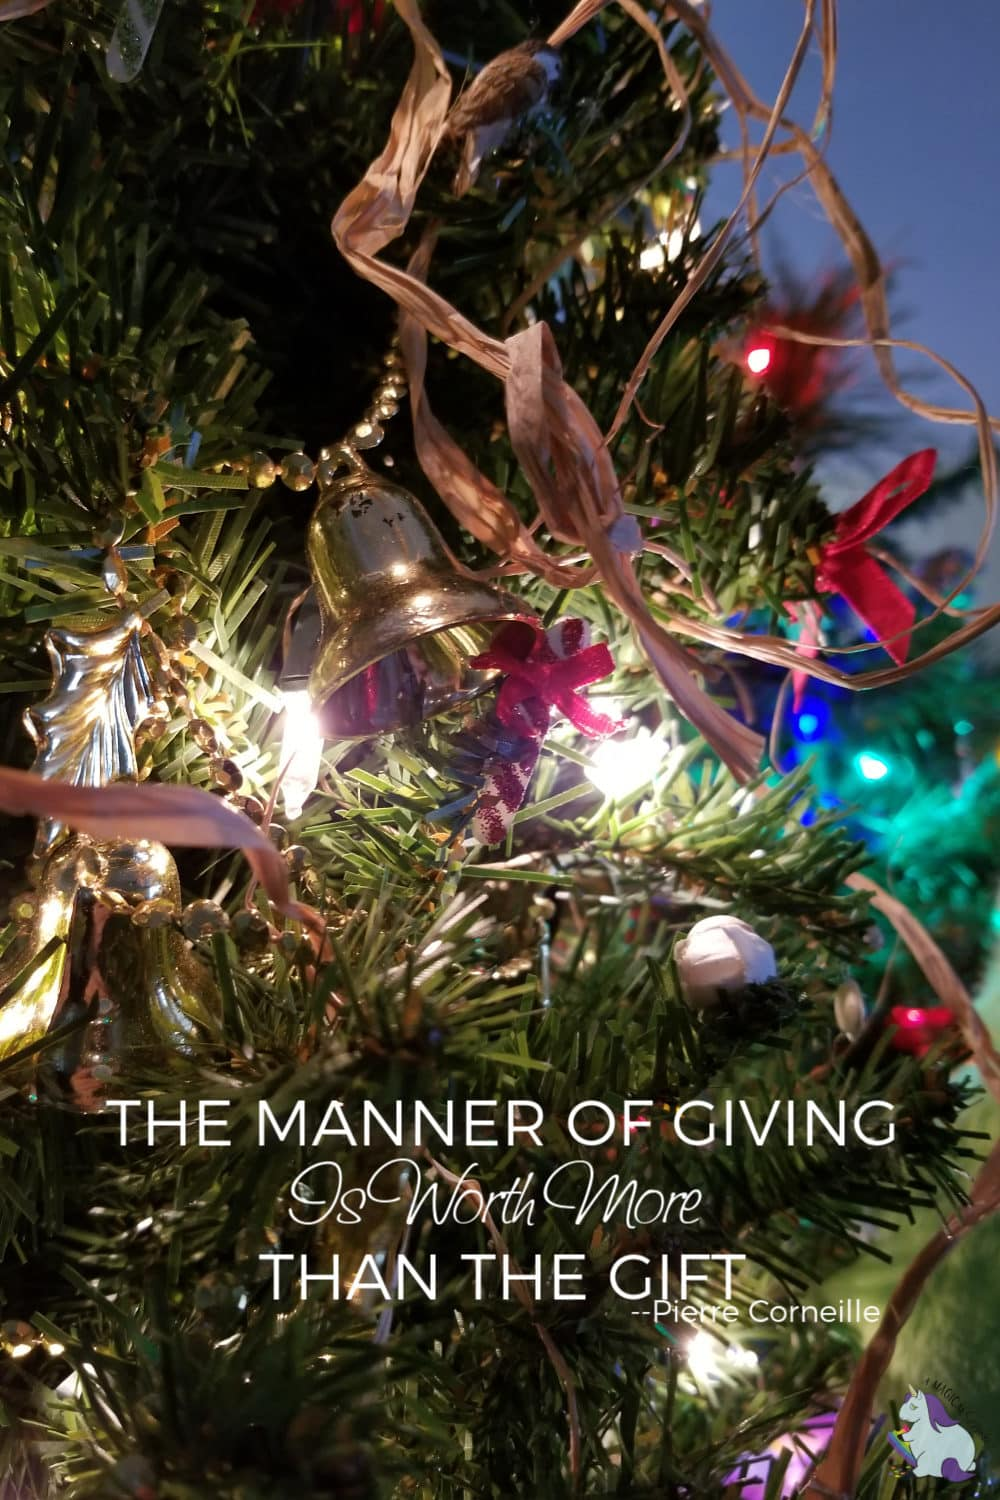 Gifting quotes - The Manner of Giving is Worth More than the Gift.